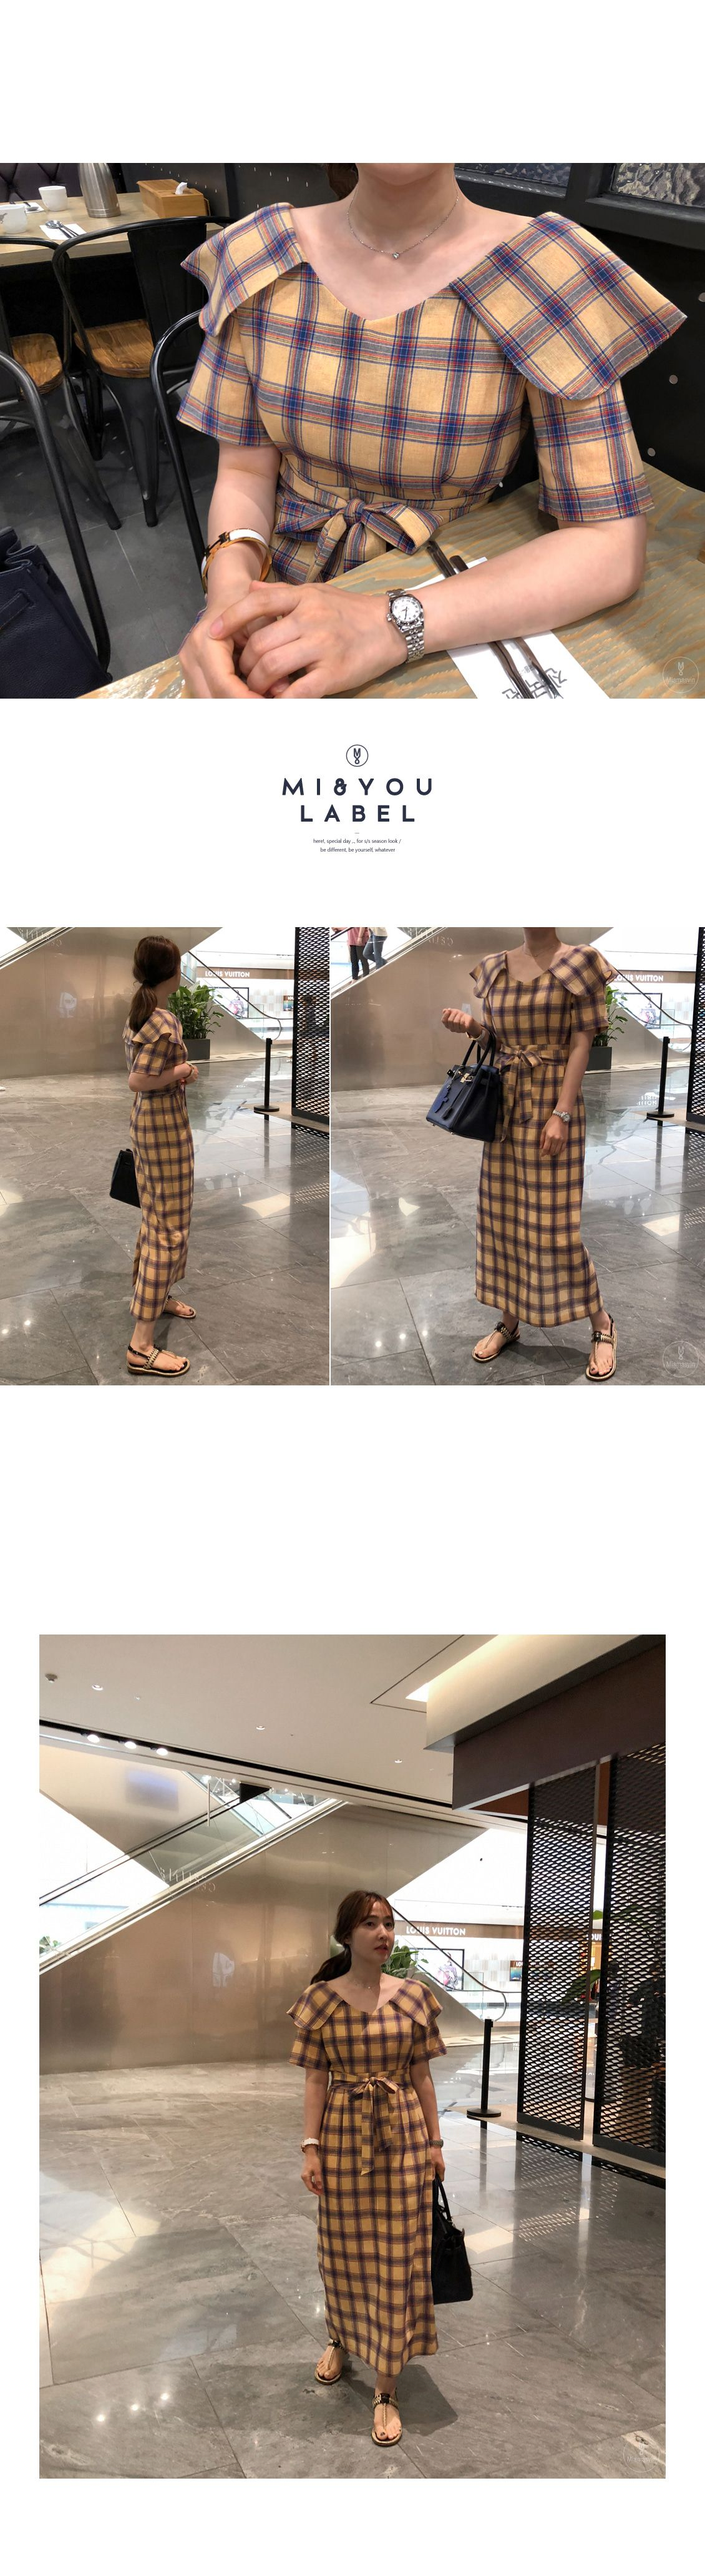 Tiewaist check dress miamasvin loves u womens clothing korean